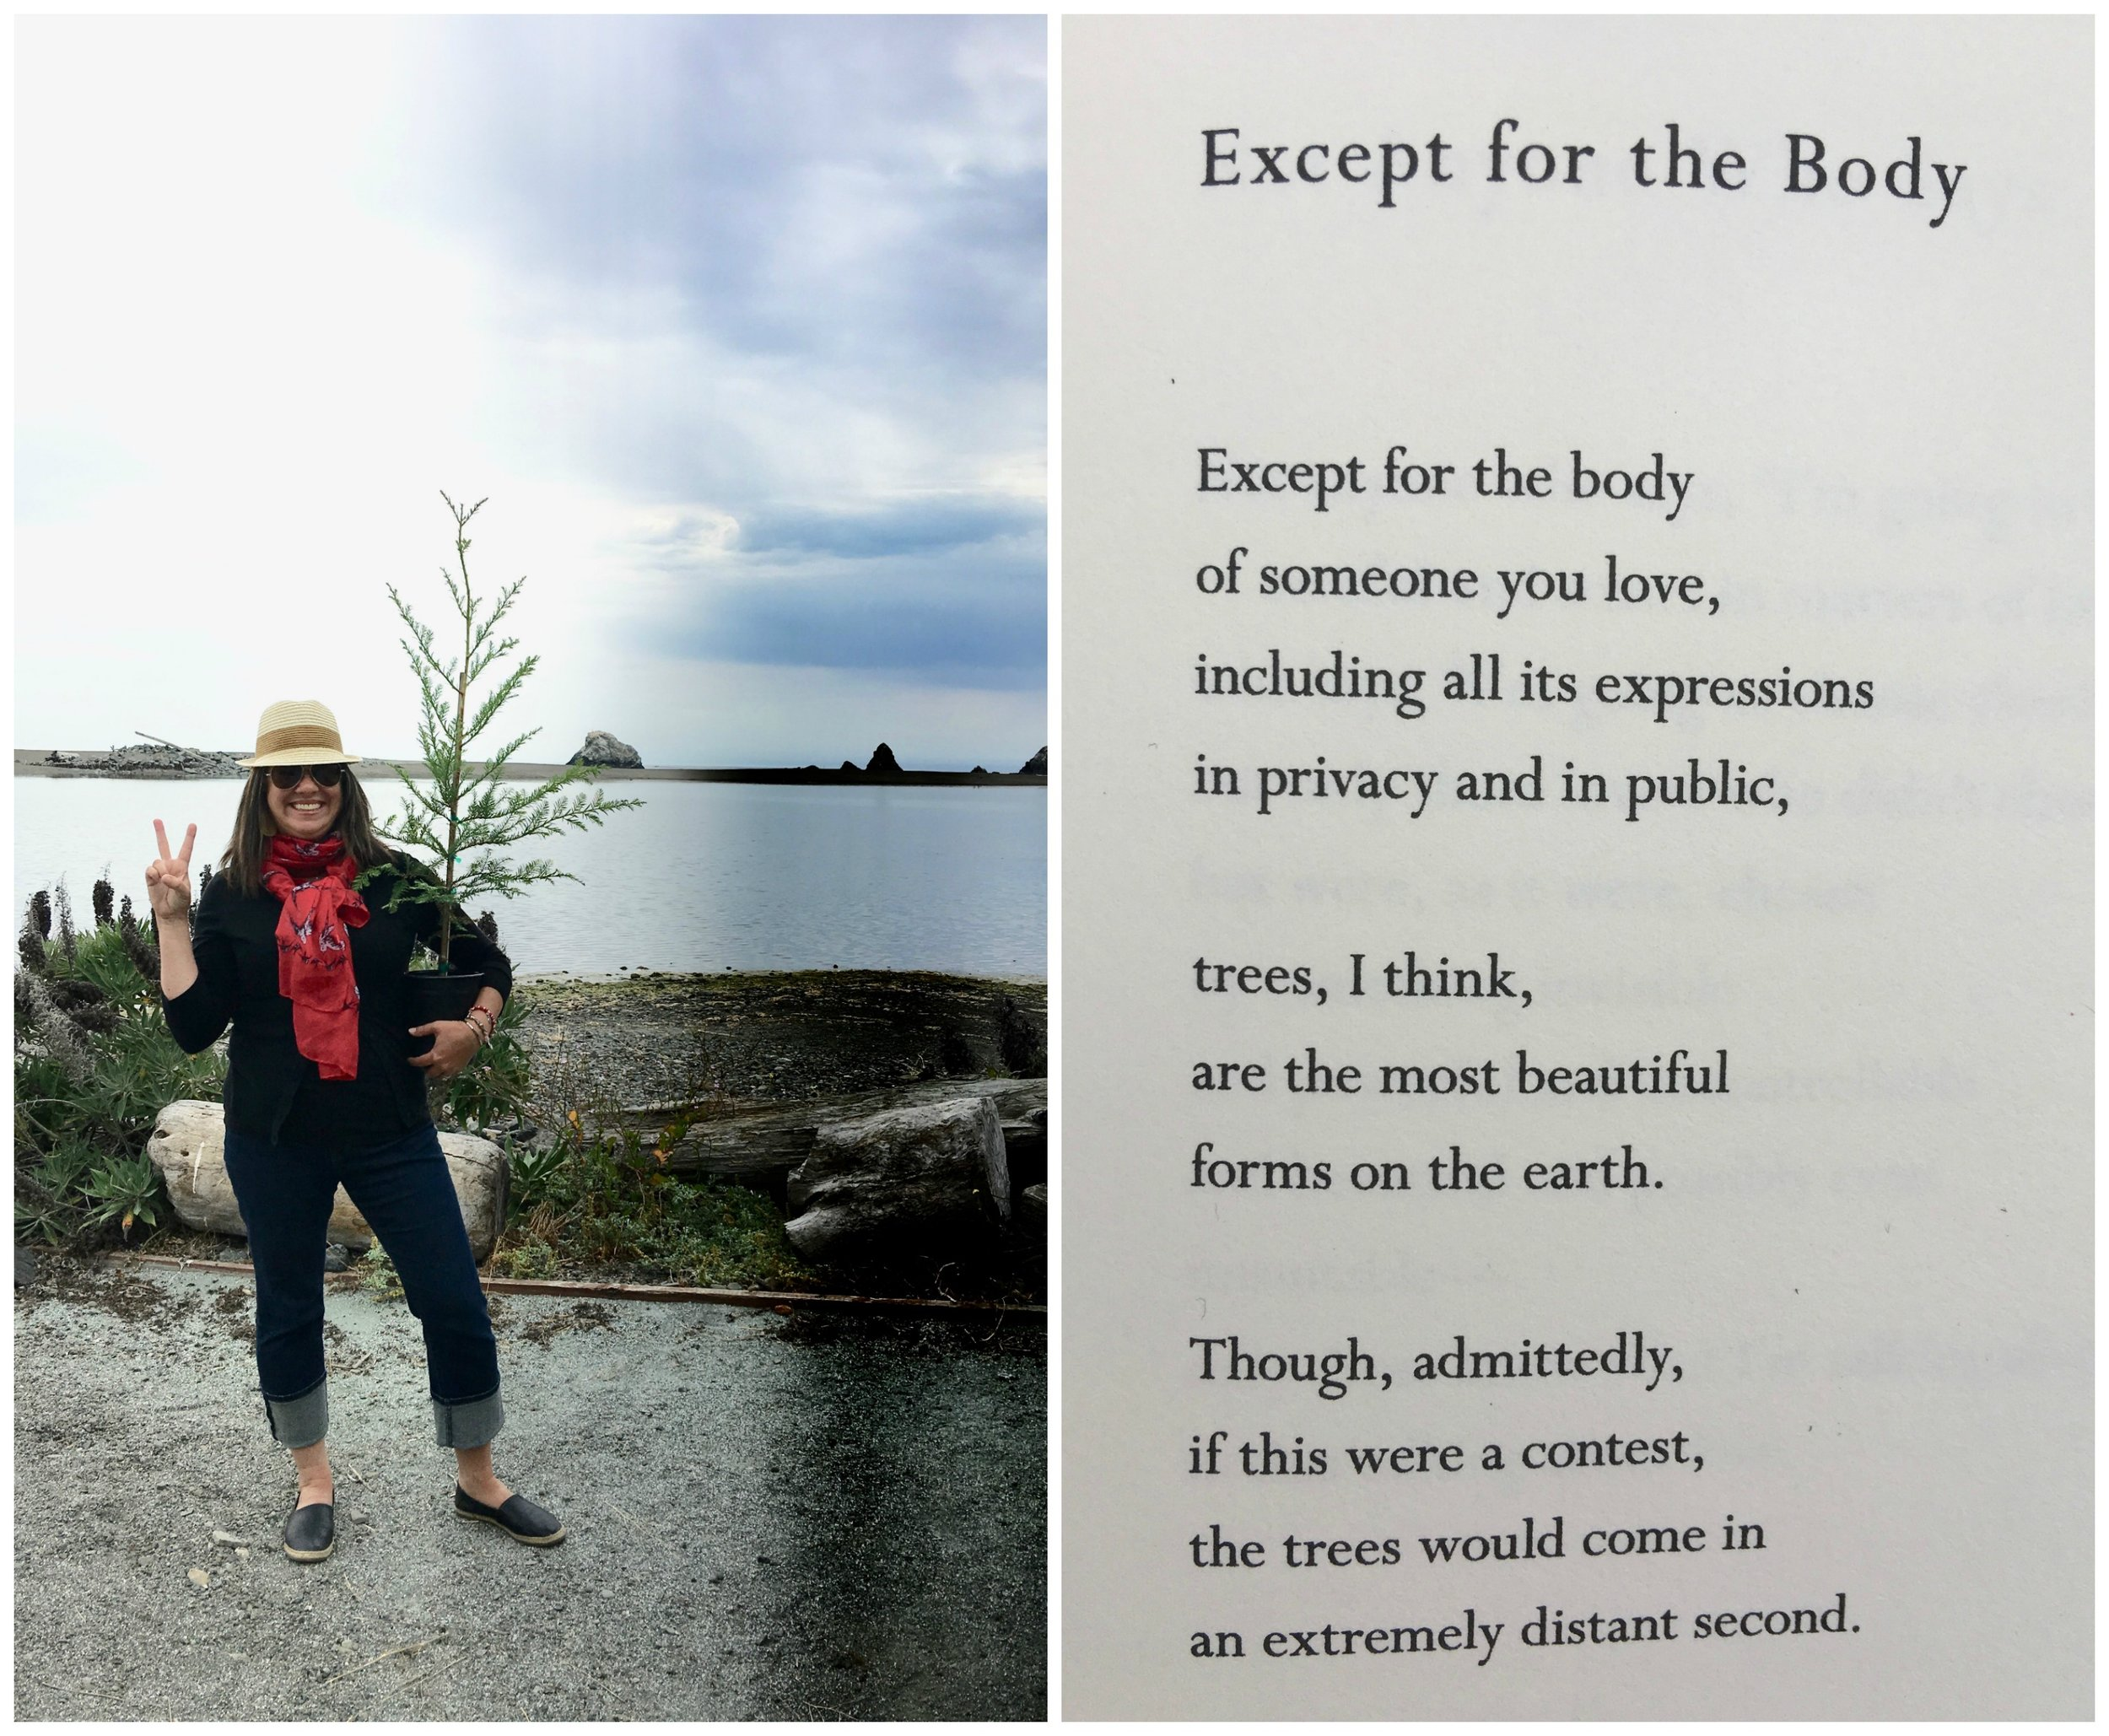 We planted a redwood tree, along with some of Kacy's ashes, up in Jenner, CA. The poem is by Mary Oliver.